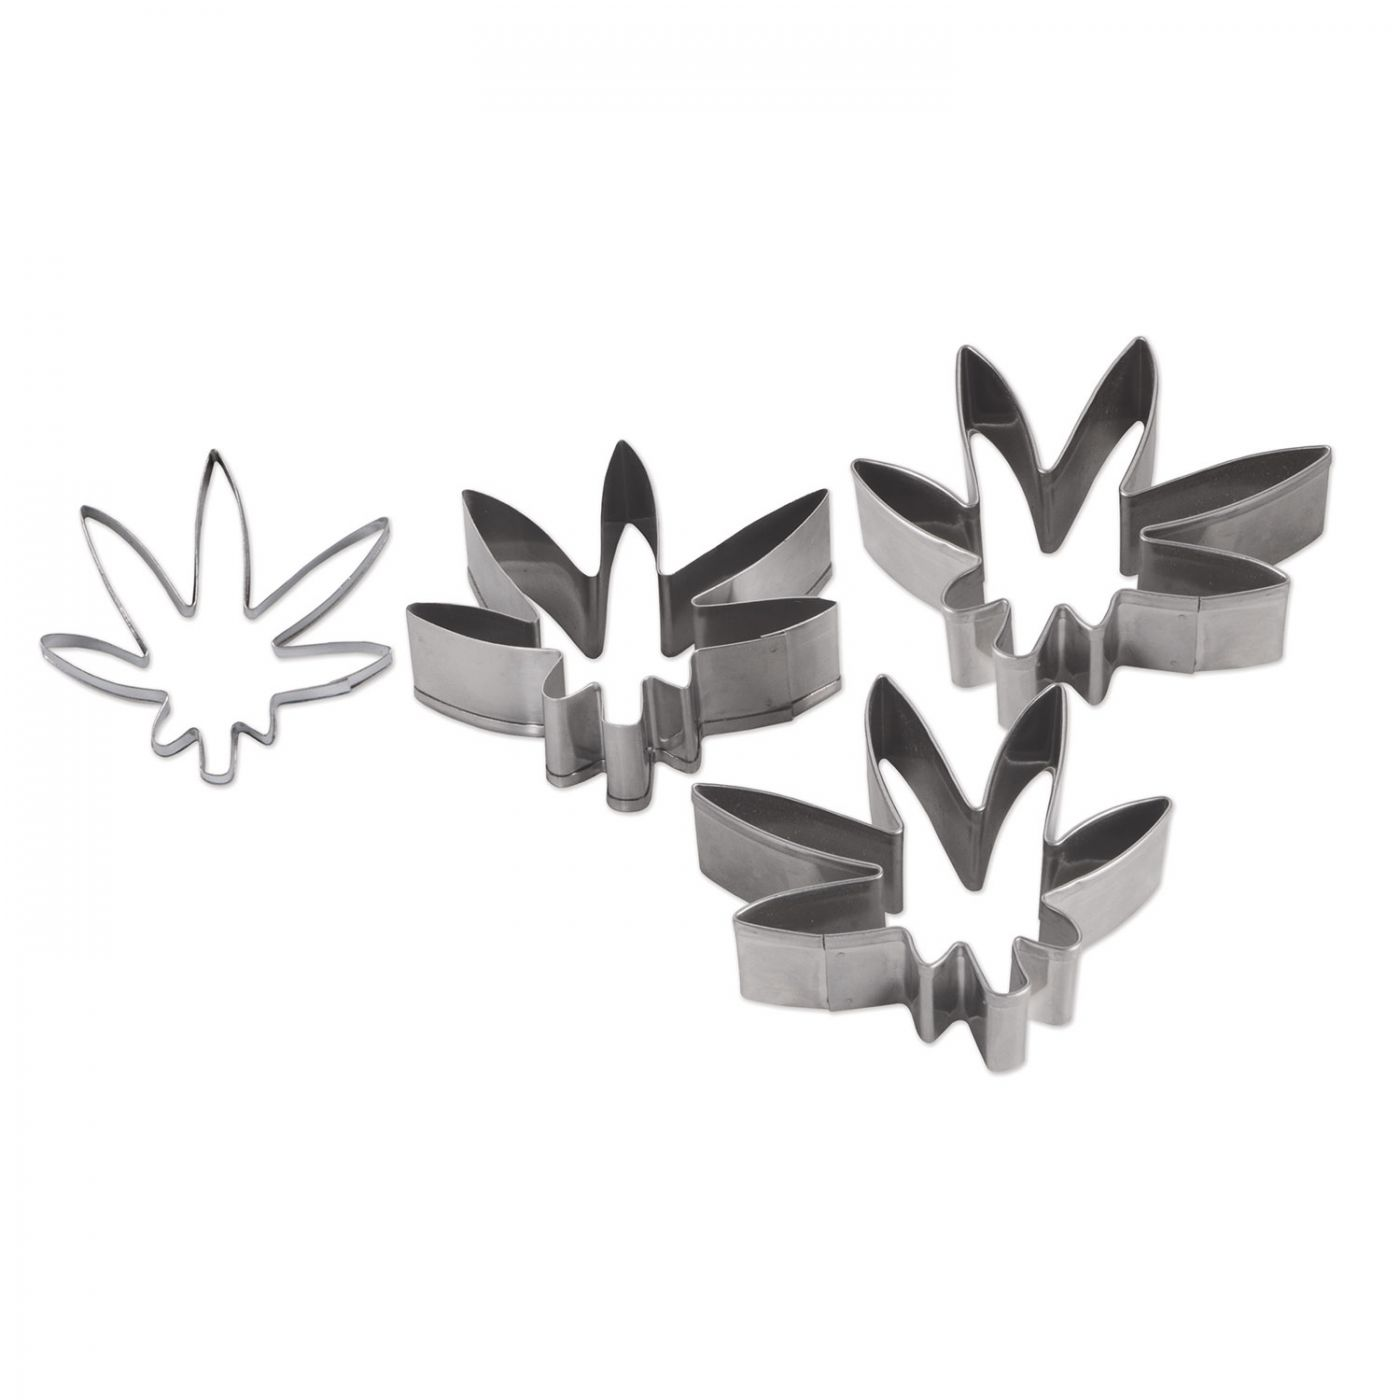 Weed Cookie Cutters image